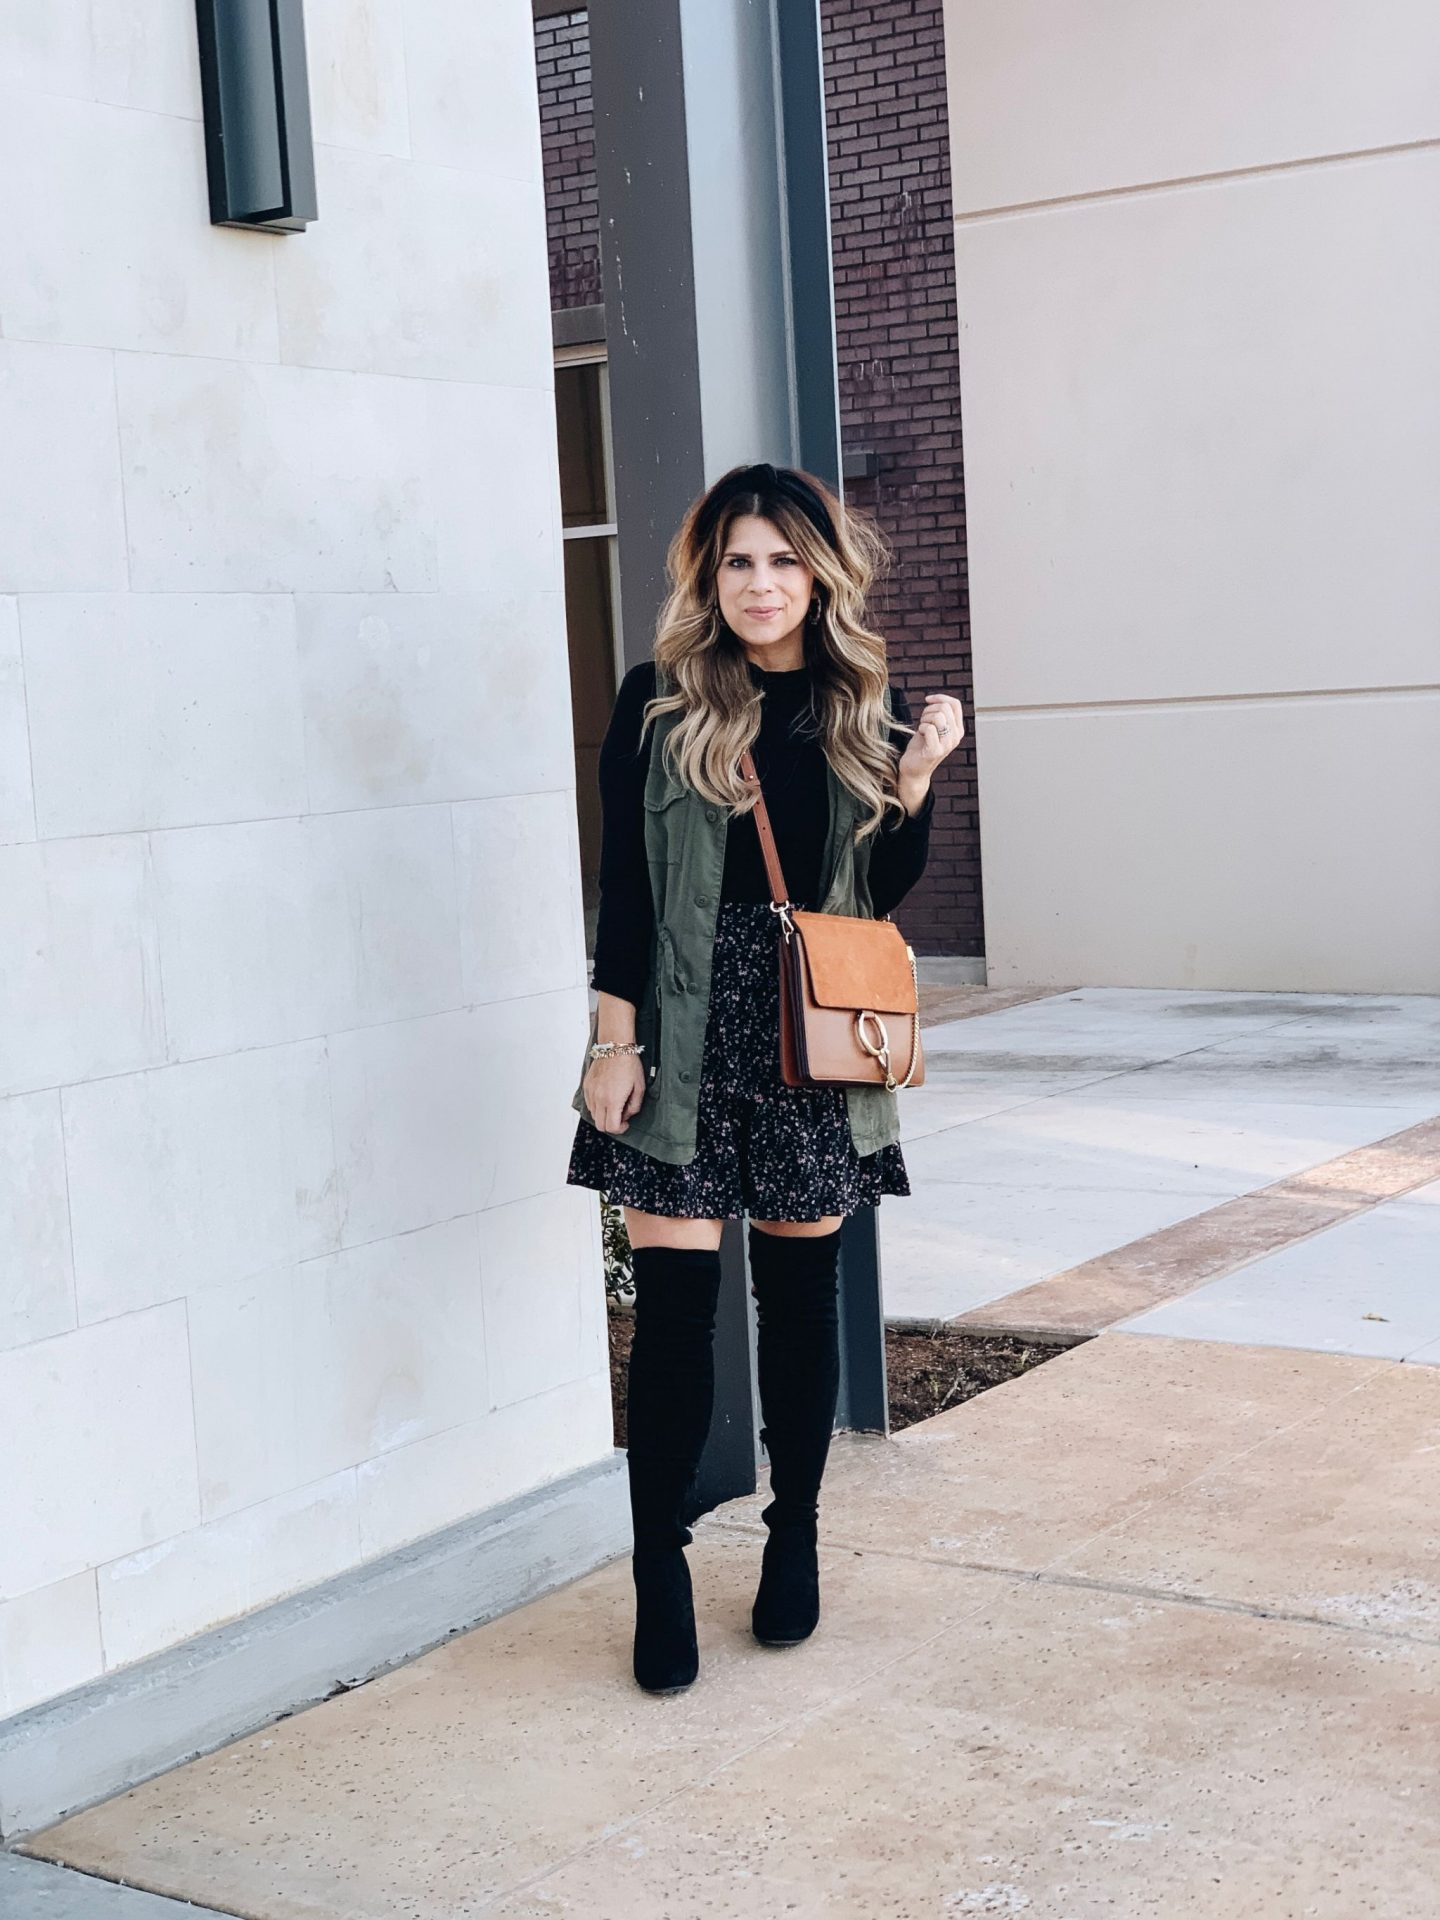 How To Style A Ruffle Skirt, Over The Knee Boots, Black Knot Headband, Chloe Faye Bag, Look for Less, Green Utility Vest, Stella & Dot